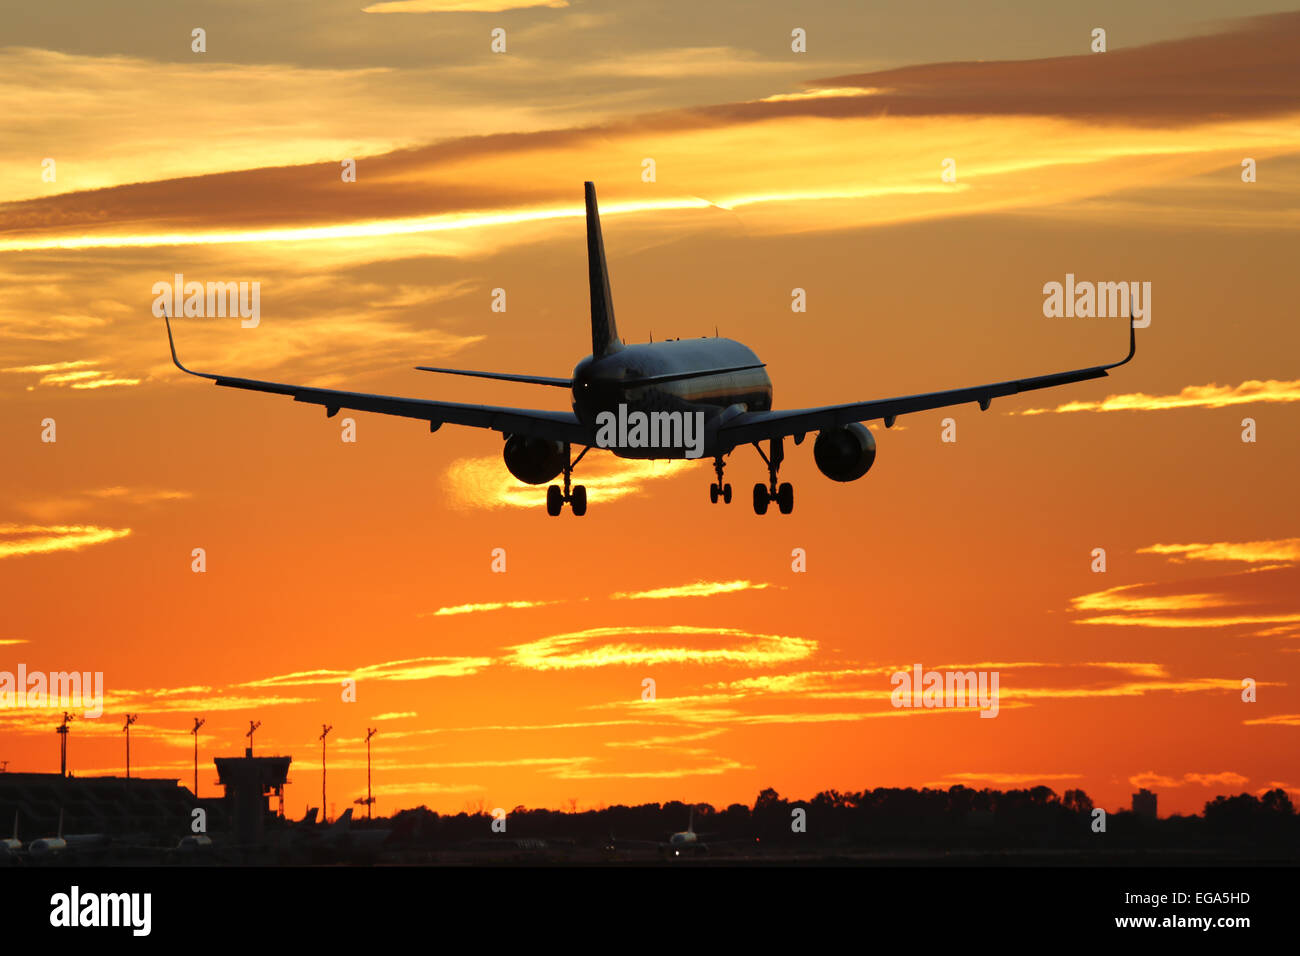 An airplane landing at an airport during sunset on vacation when traveling - Stock Image